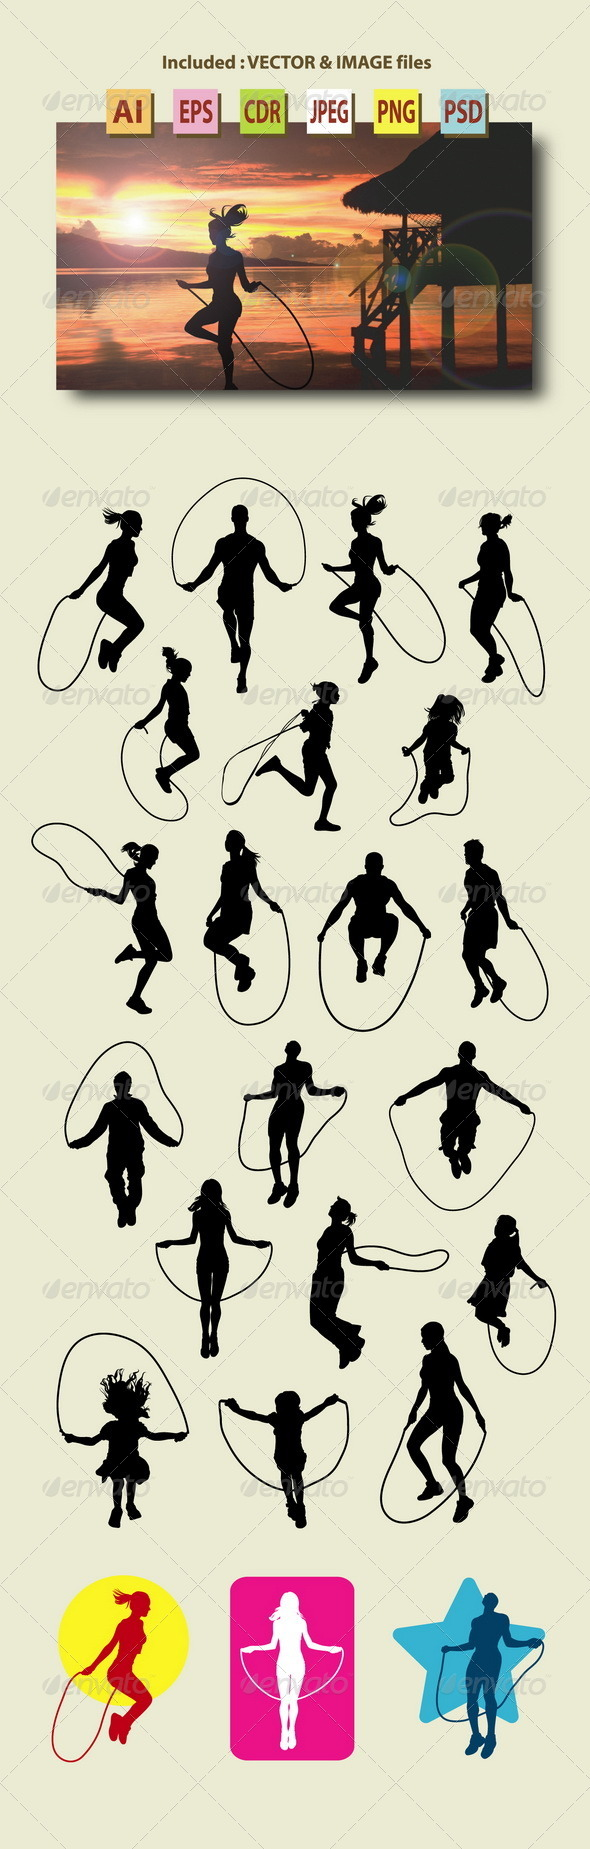 GraphicRiver People Skipping Rope Silhouettes 8787362